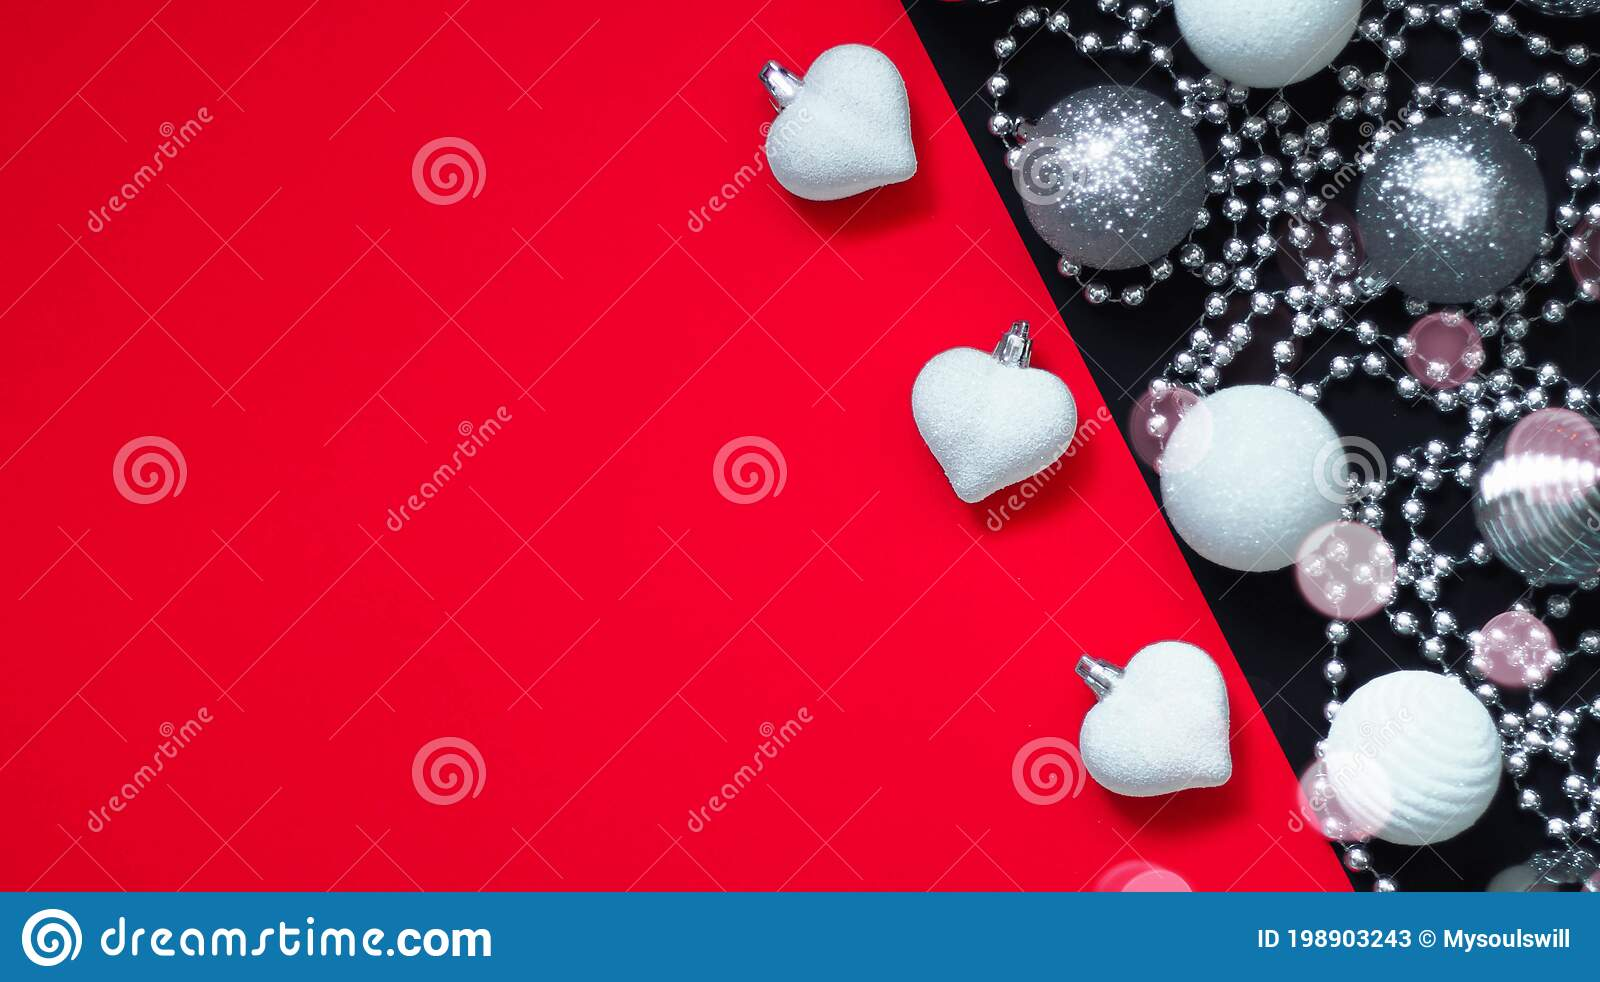 Christmas New Year Stylish Flat Lay Composition With White And Silver Decorations On Red Black Background Stock Image Of Ornament 198903243